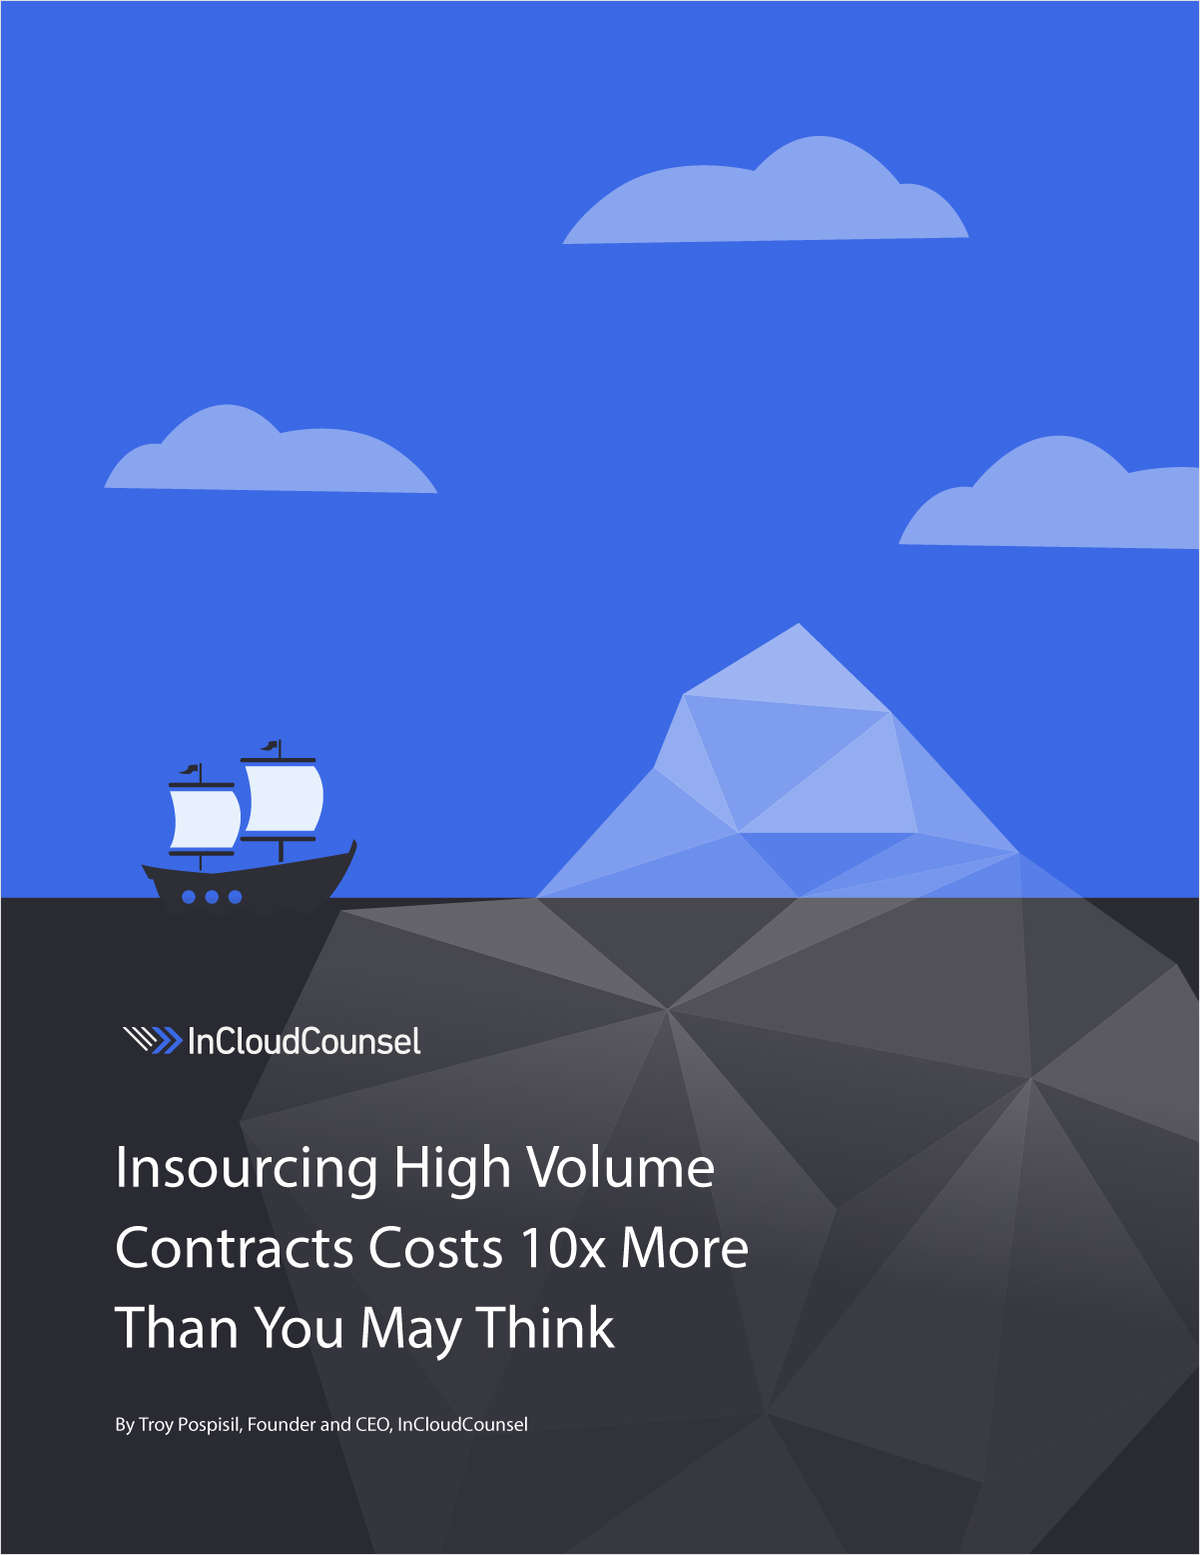 The cost for companies to insource high-volume, routine legal activities is higher than you may think. This paper explores the hidden costs of insourcing and how new outsourcing options can deliver a superior alternative, while driving down costs and improving efficiency.